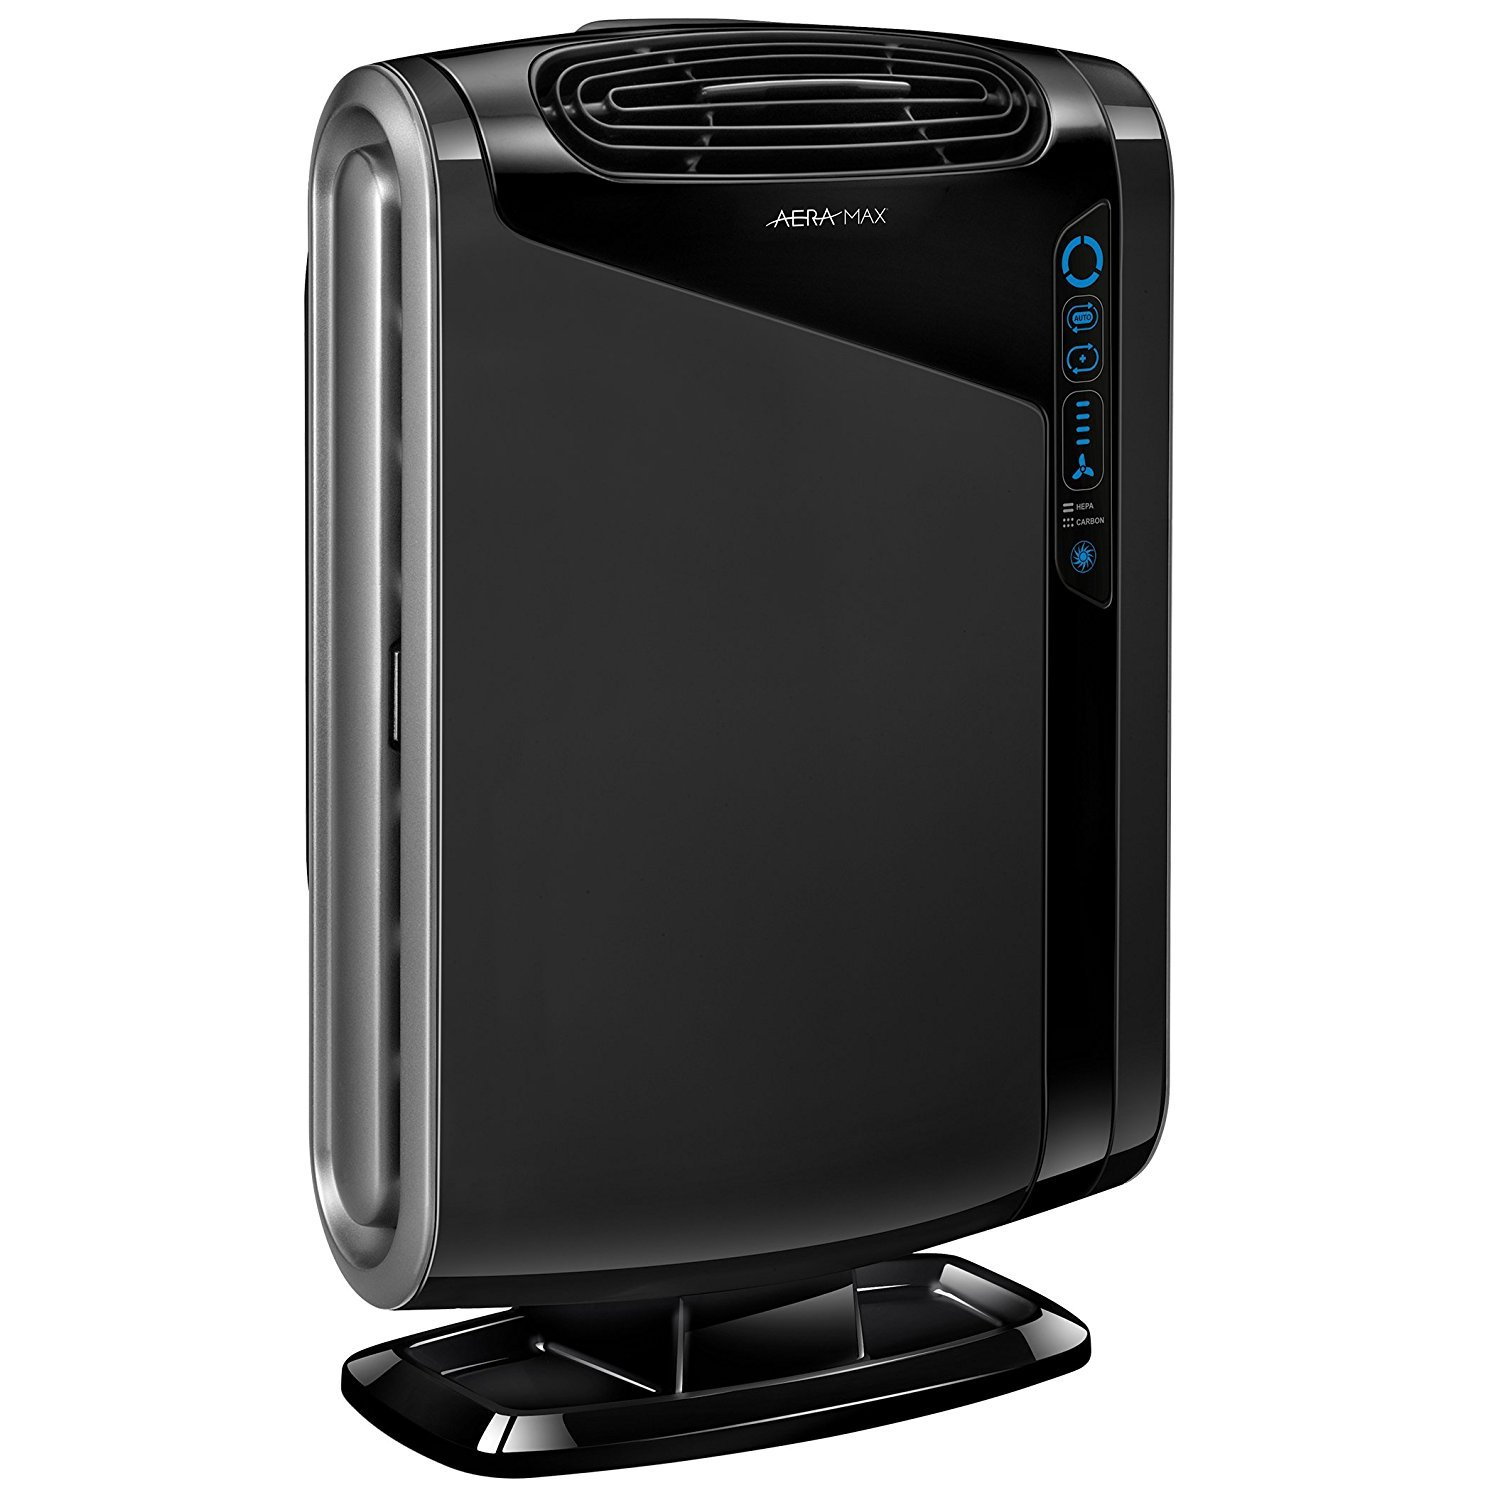 Fellowes AeraMax 290 Large Room Air Purifier